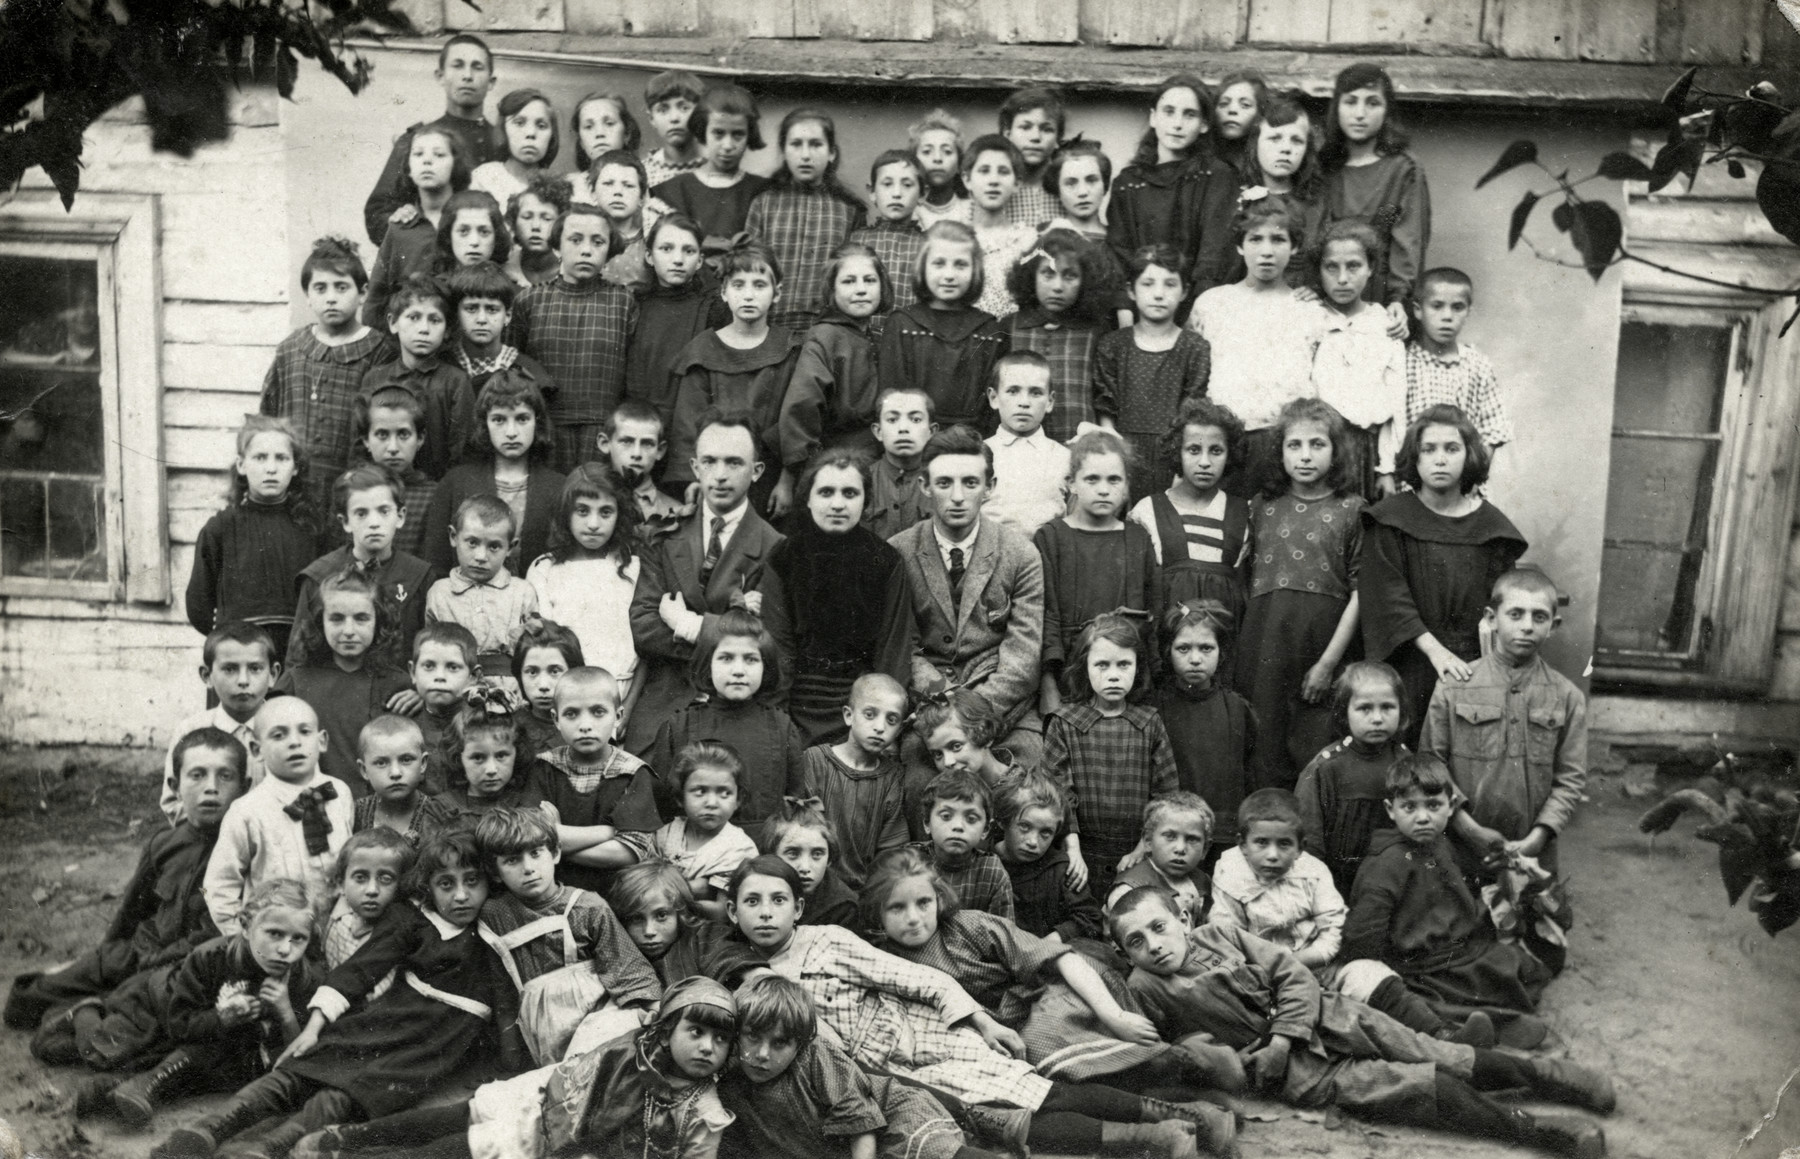 Group portrait of children in a school in Utena (Utian).  Chana Rudashevsky is pictured in the third row, on the far right.